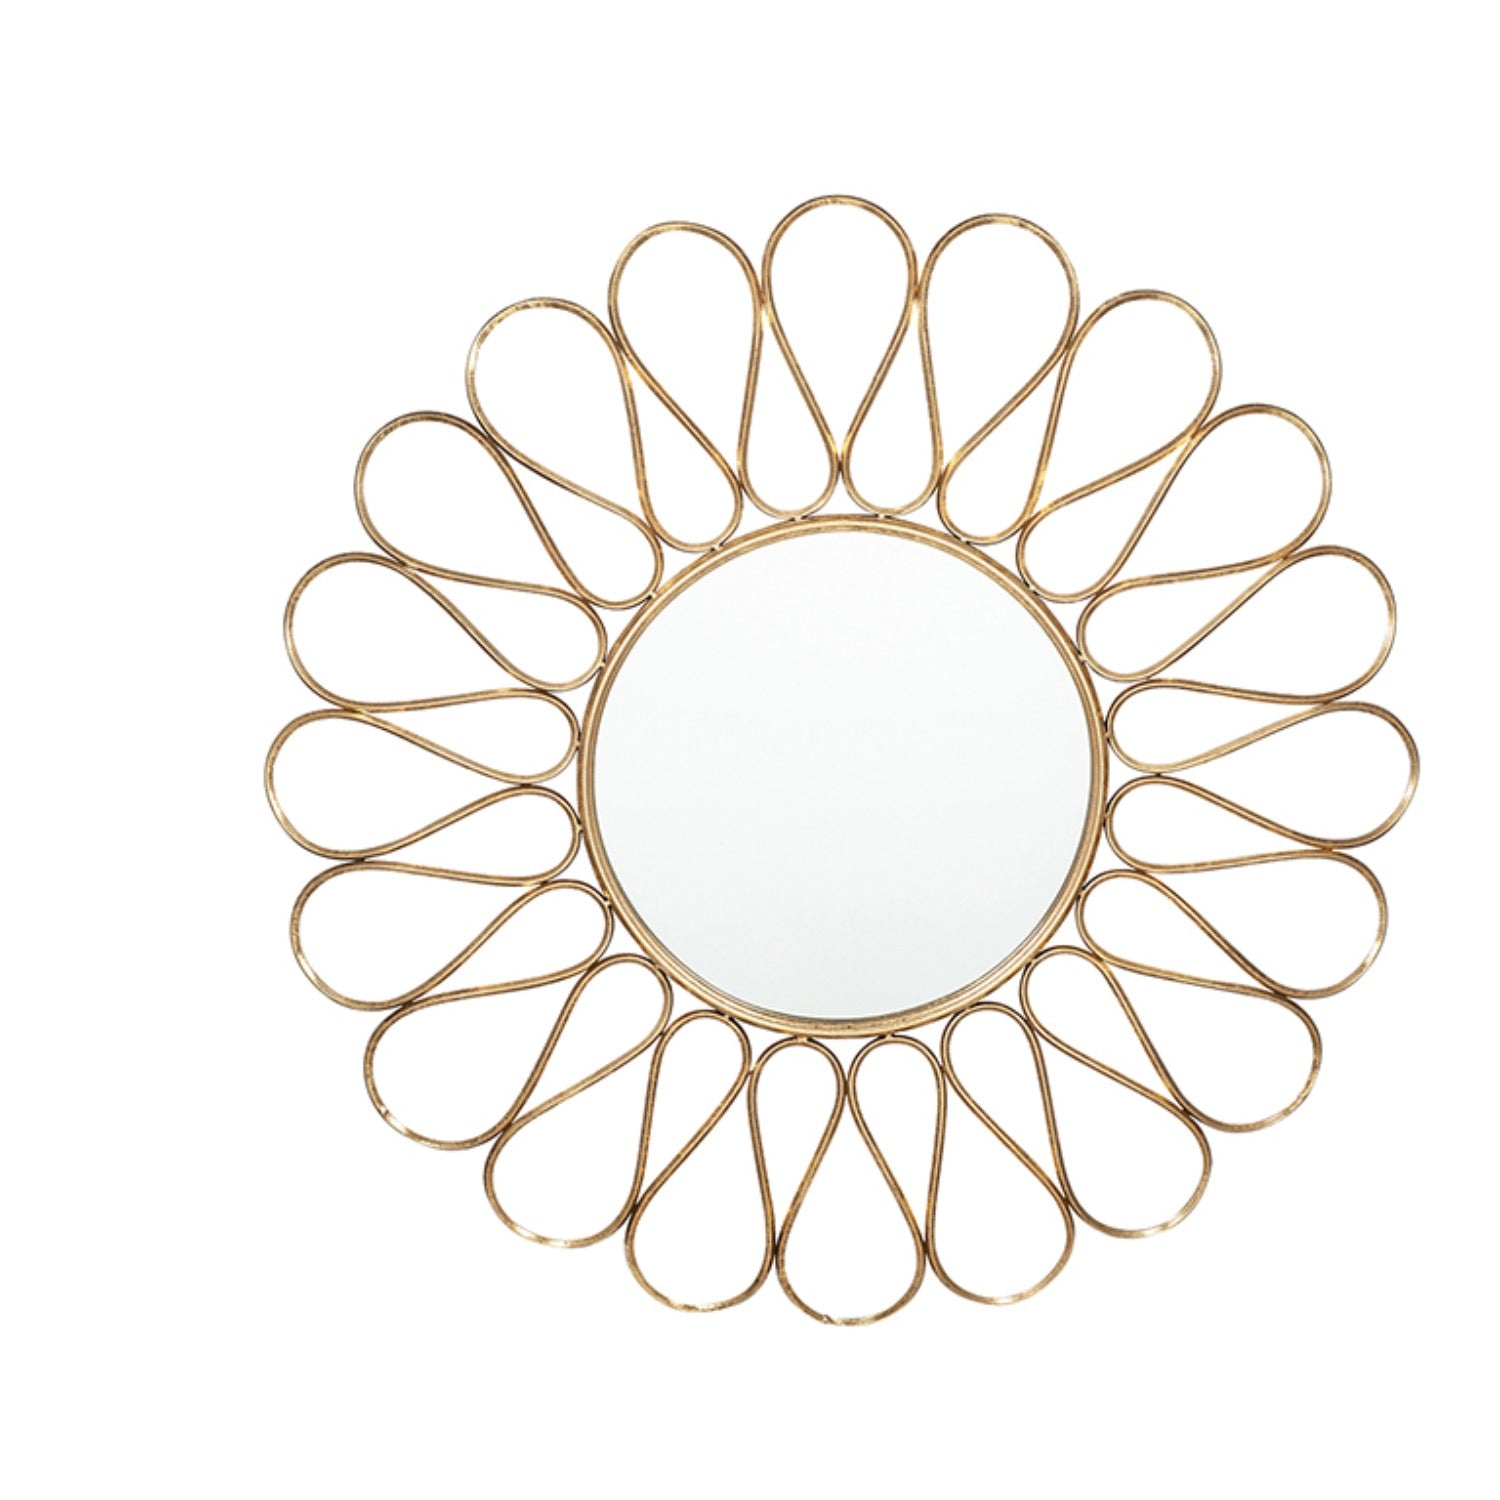 Petal Design Round Wall Mirror in Antique Gold